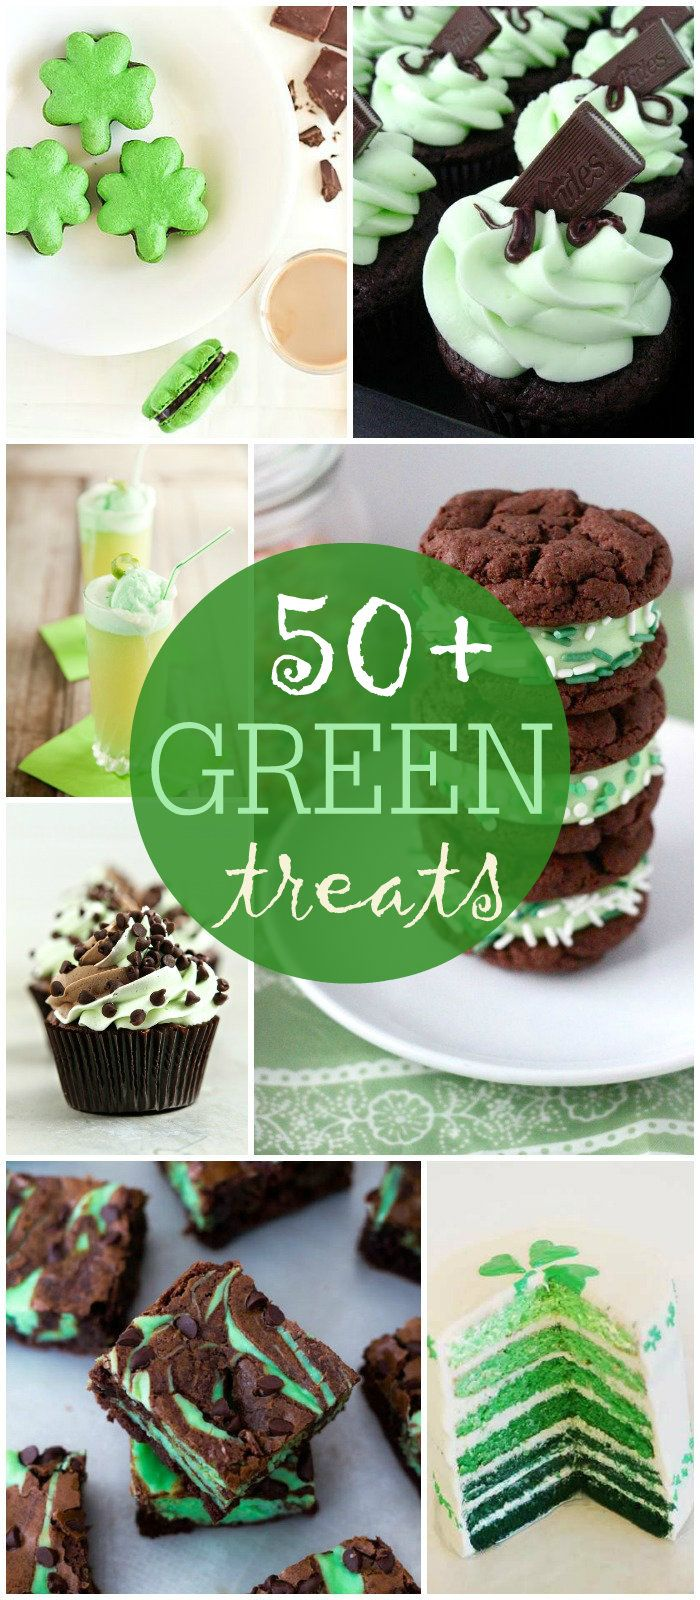 All the green treats for St. Patrick's Day